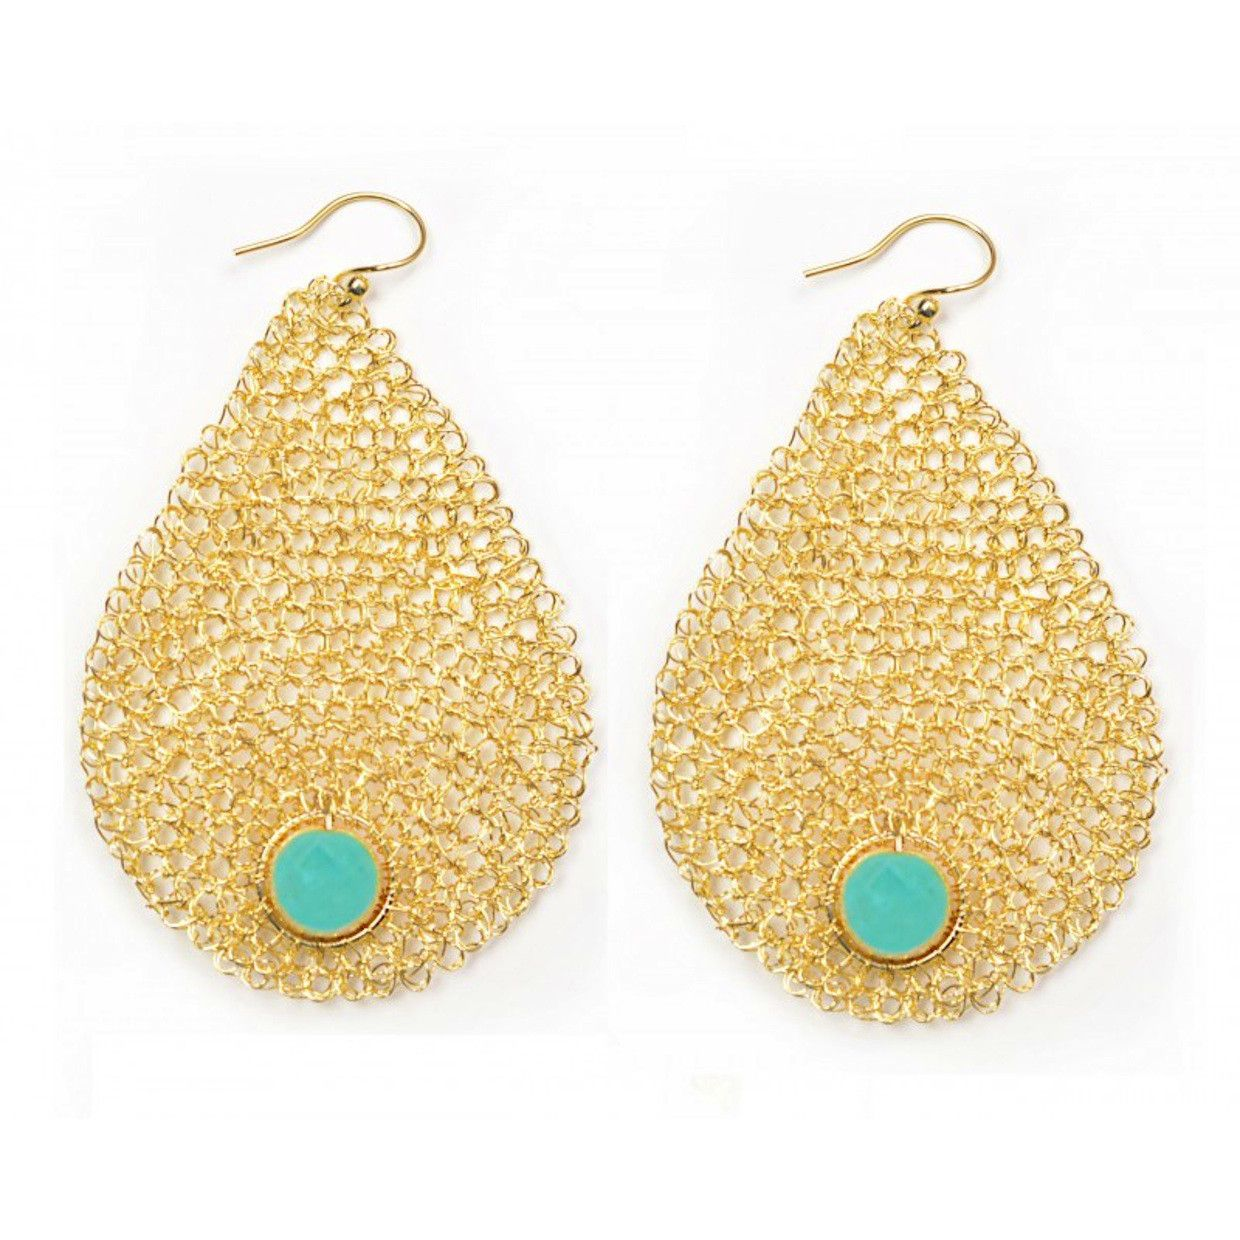 Divya wore these Teardrop Earrings from Lavish on #RoyalPains. Gorgeous! #Gift #Style